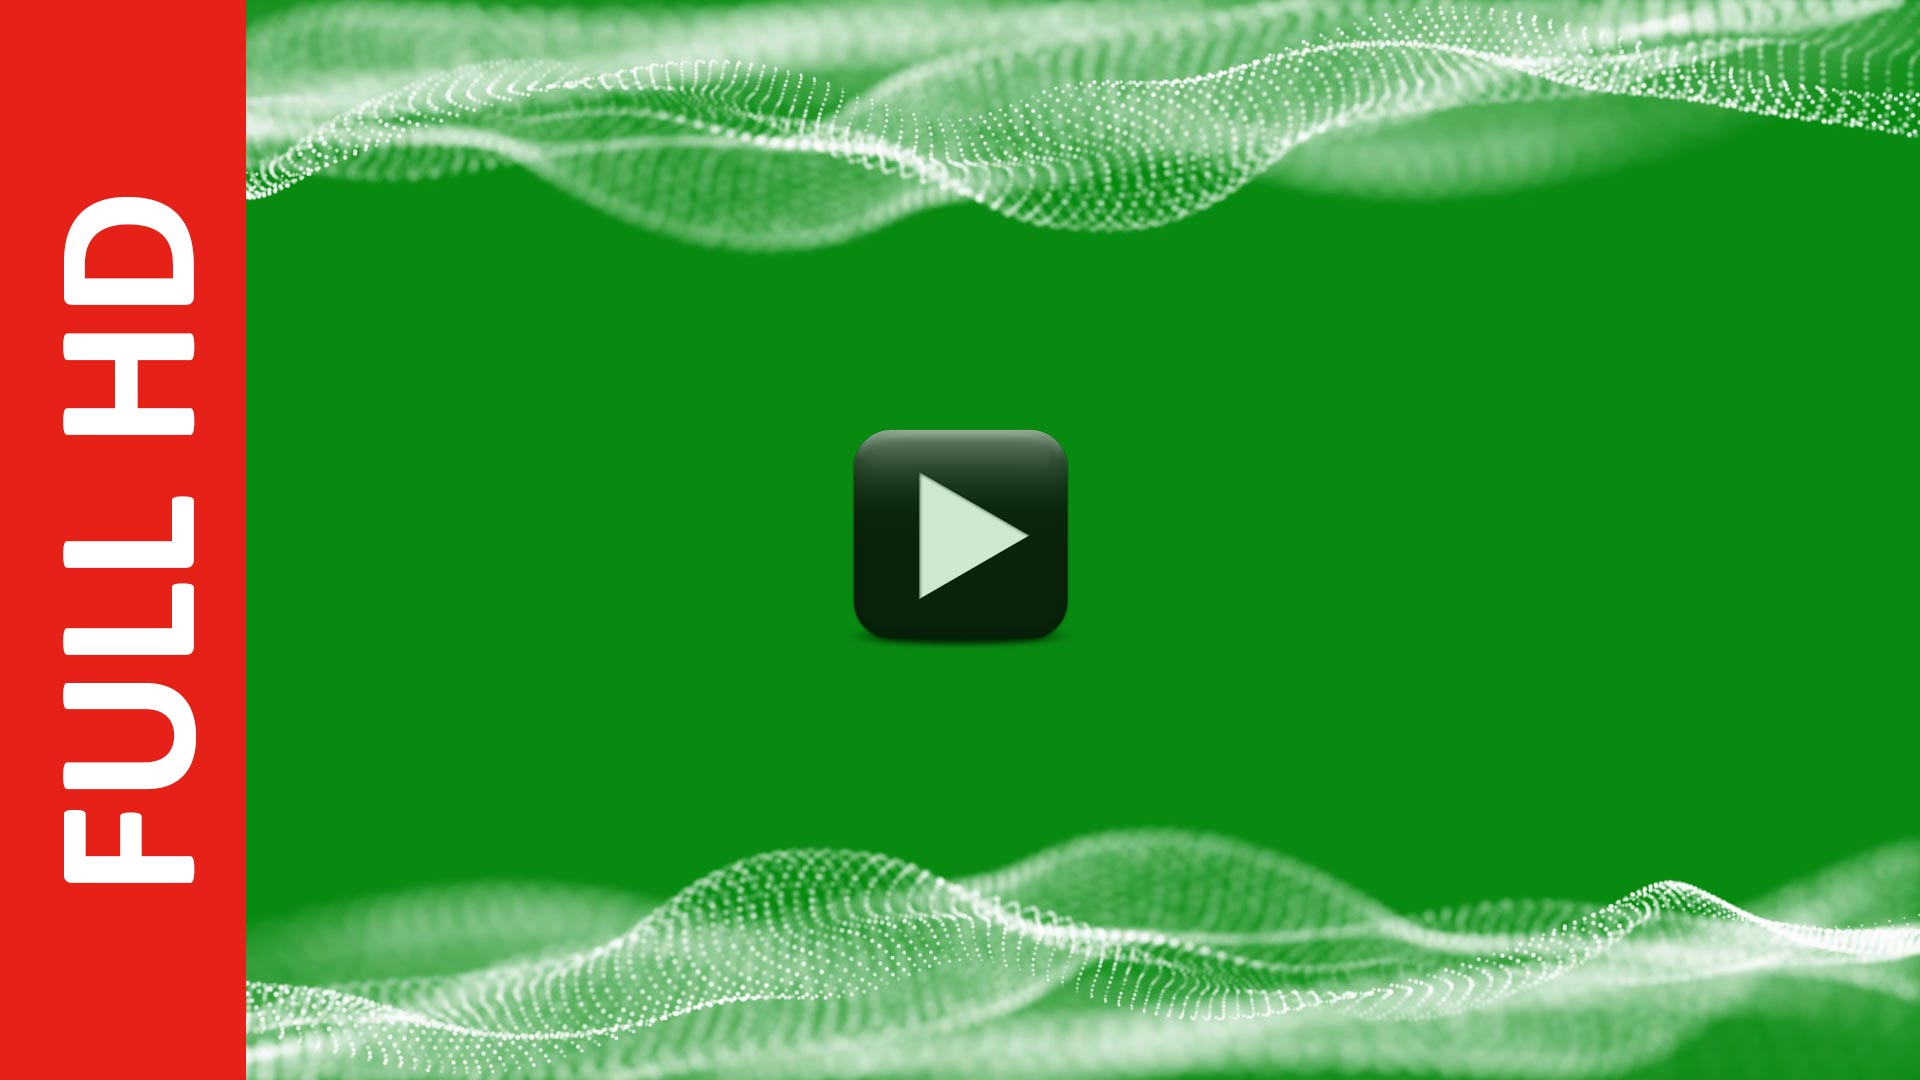 Frame Particles Green Screen Background Royalty Free | All Design ...